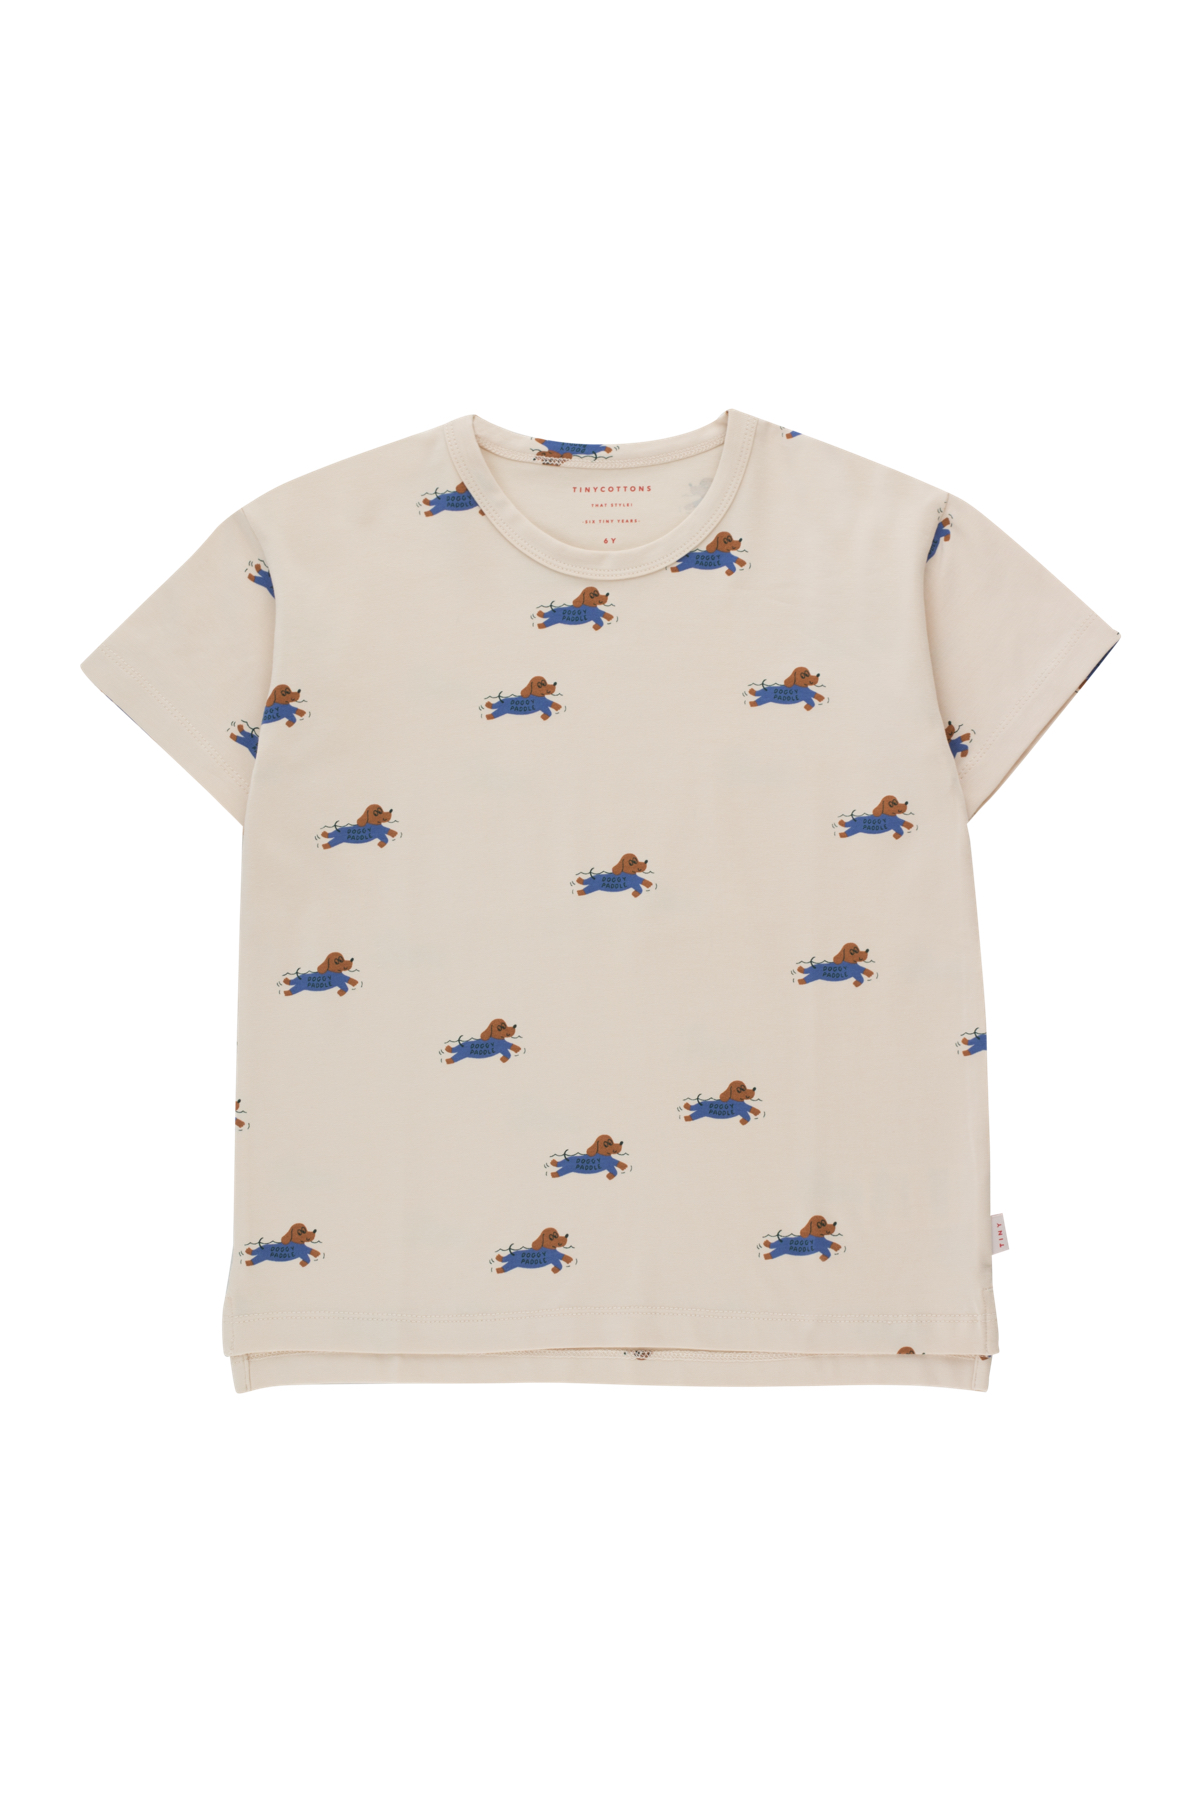 tinycottons doggy paddle tee light cream iris blue